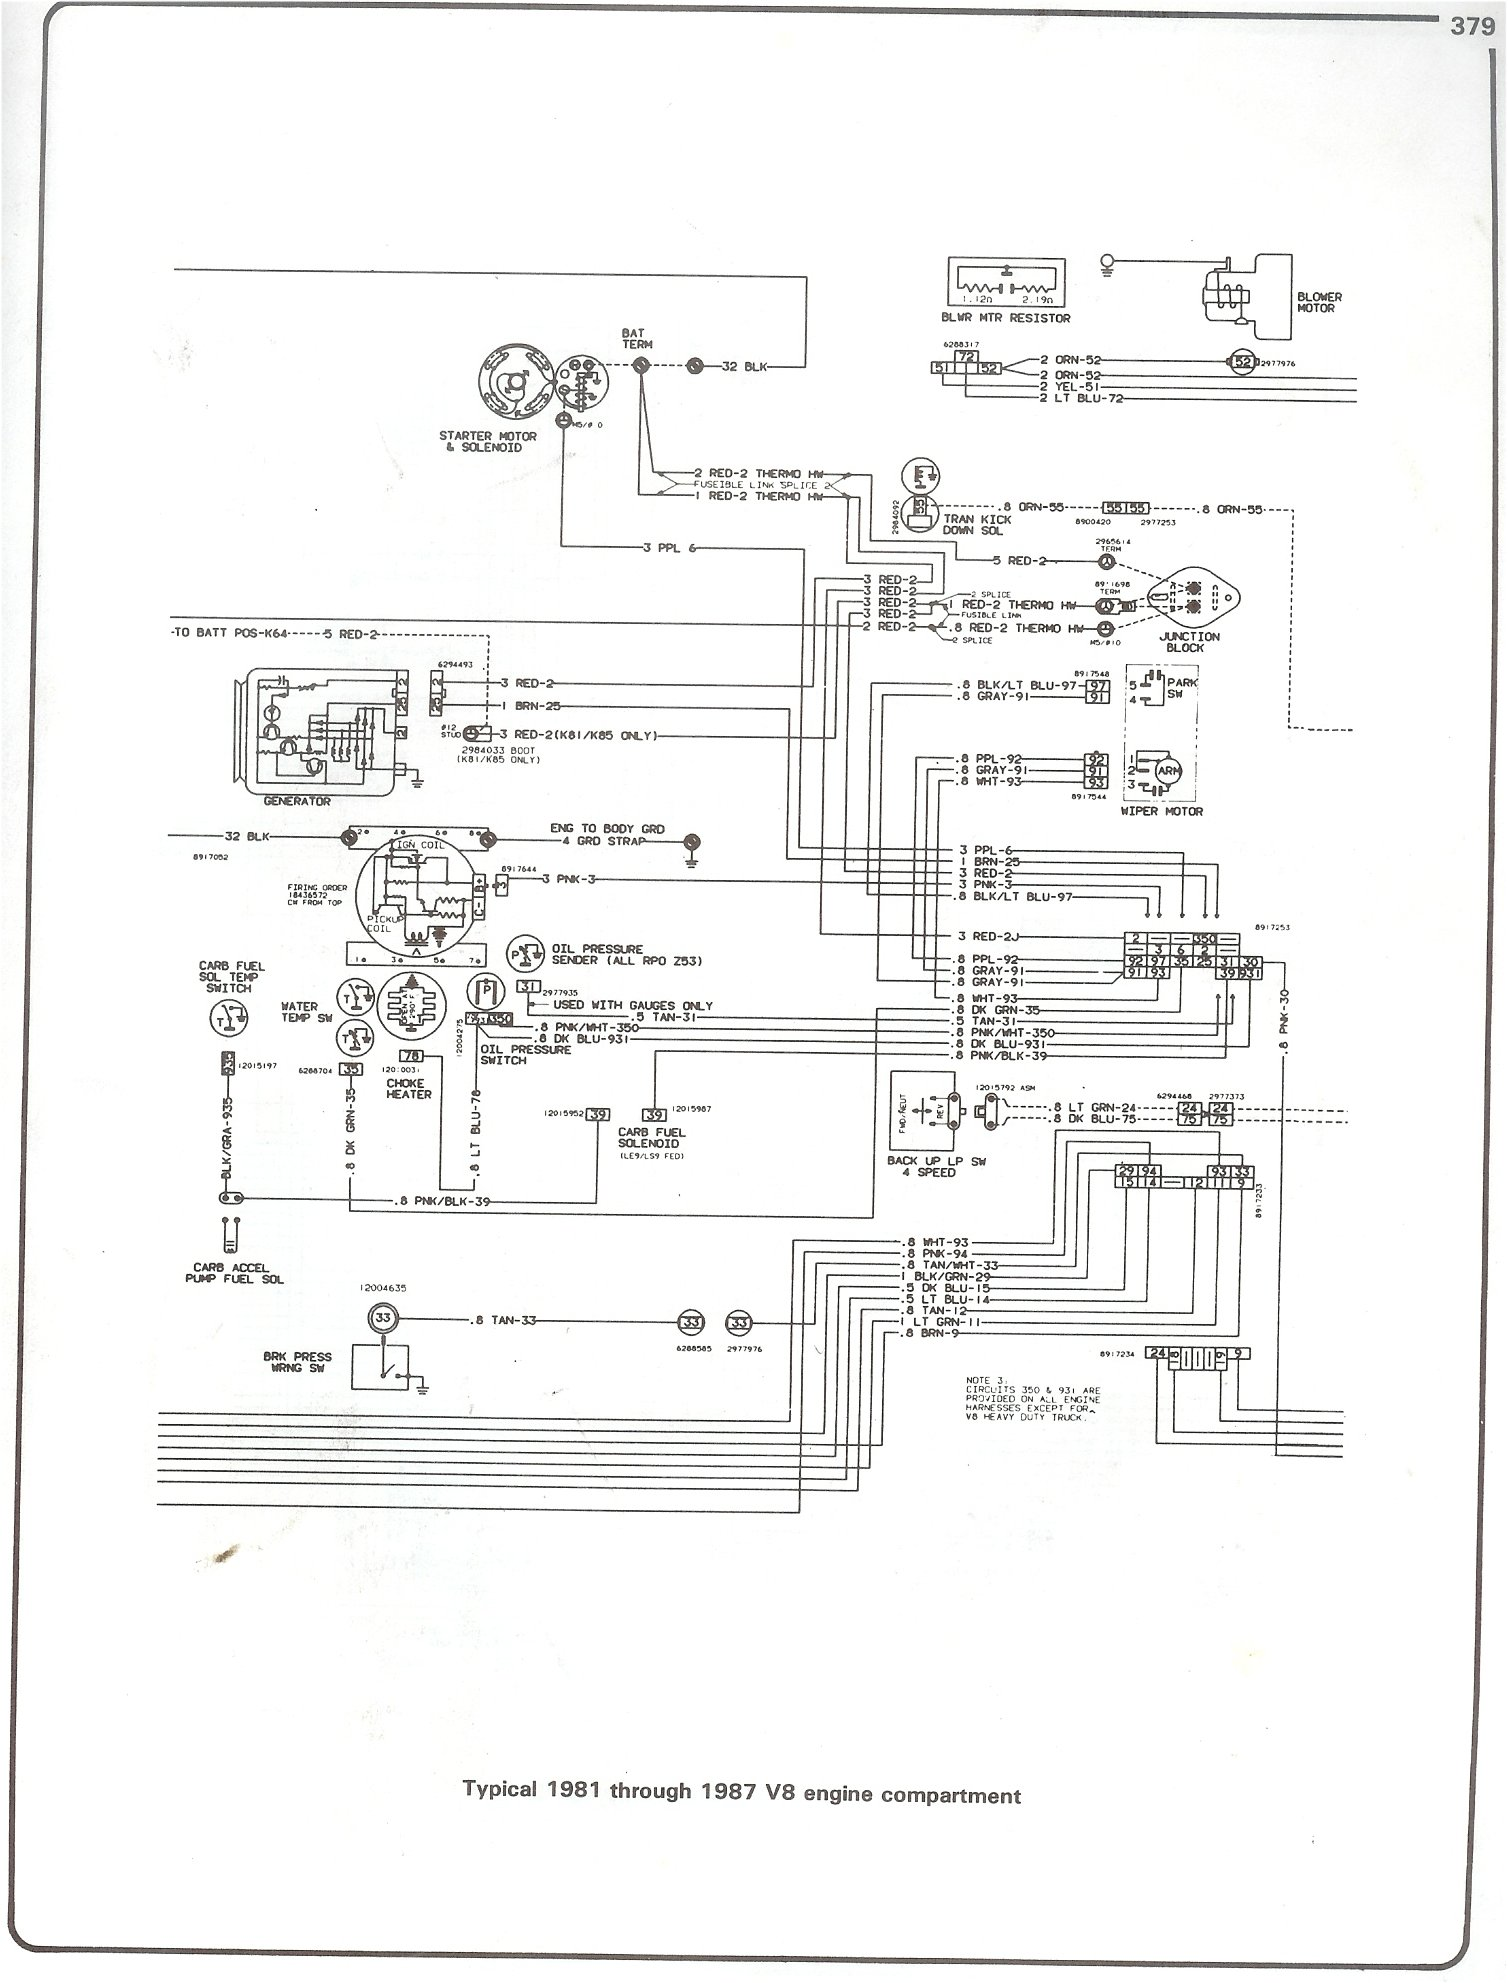 Dash Wiring For 1985 Cougar Complete Diagrams 67 Harness Schematic Chevy C10 Schematics U2022 Rh Seniorlivinguniversity Co Car